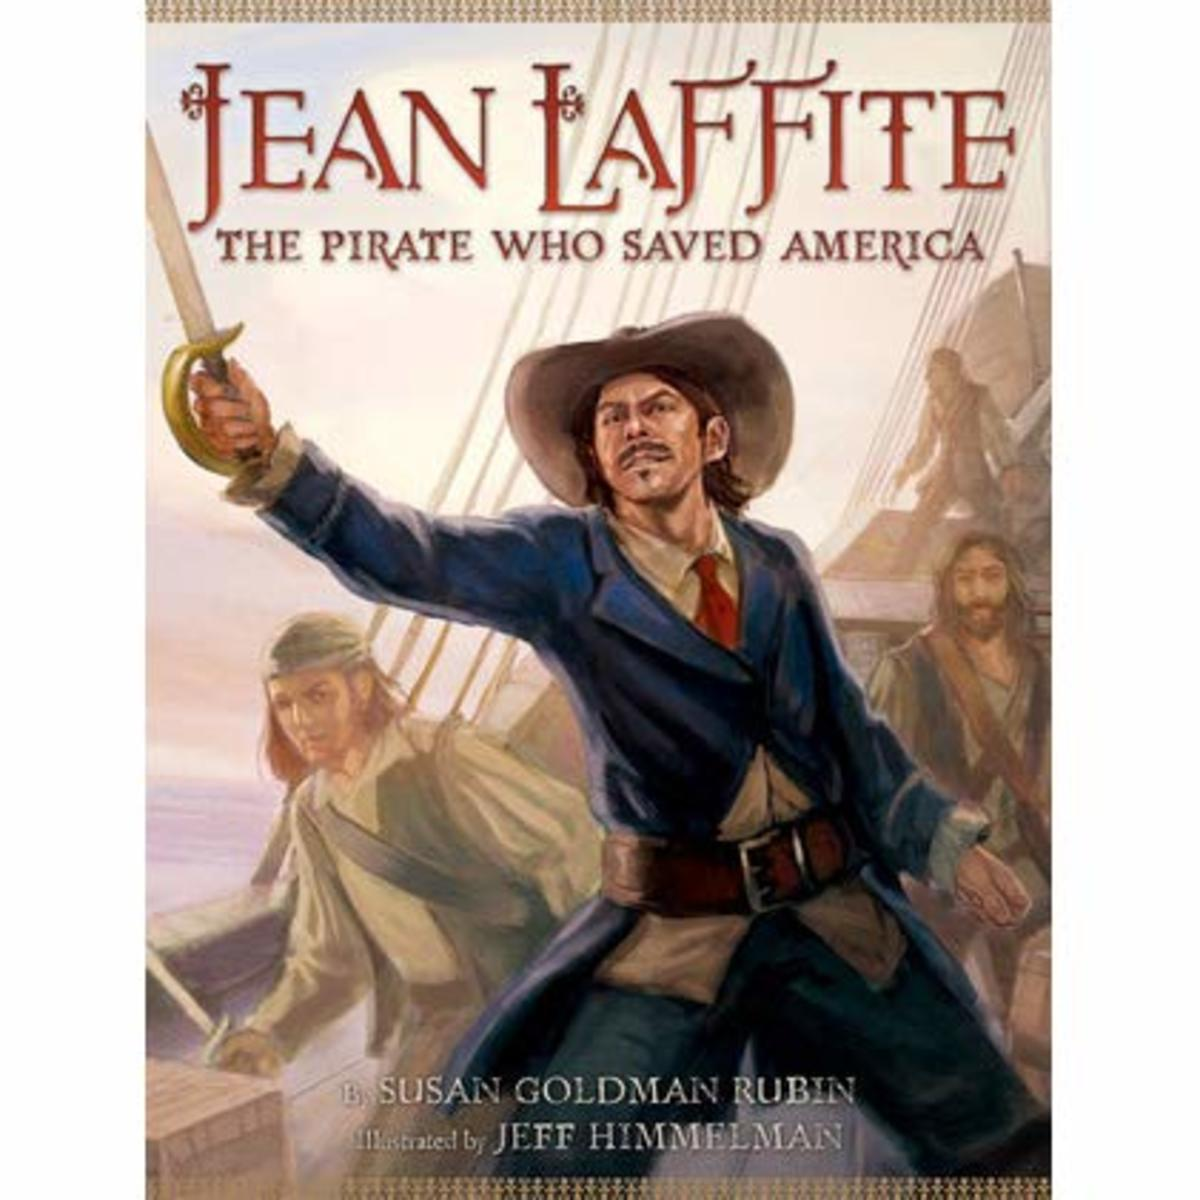 Jean Laffite: The Pirate Who Saved America by Susan Goldman Rubin - This image is from goodreads .com.